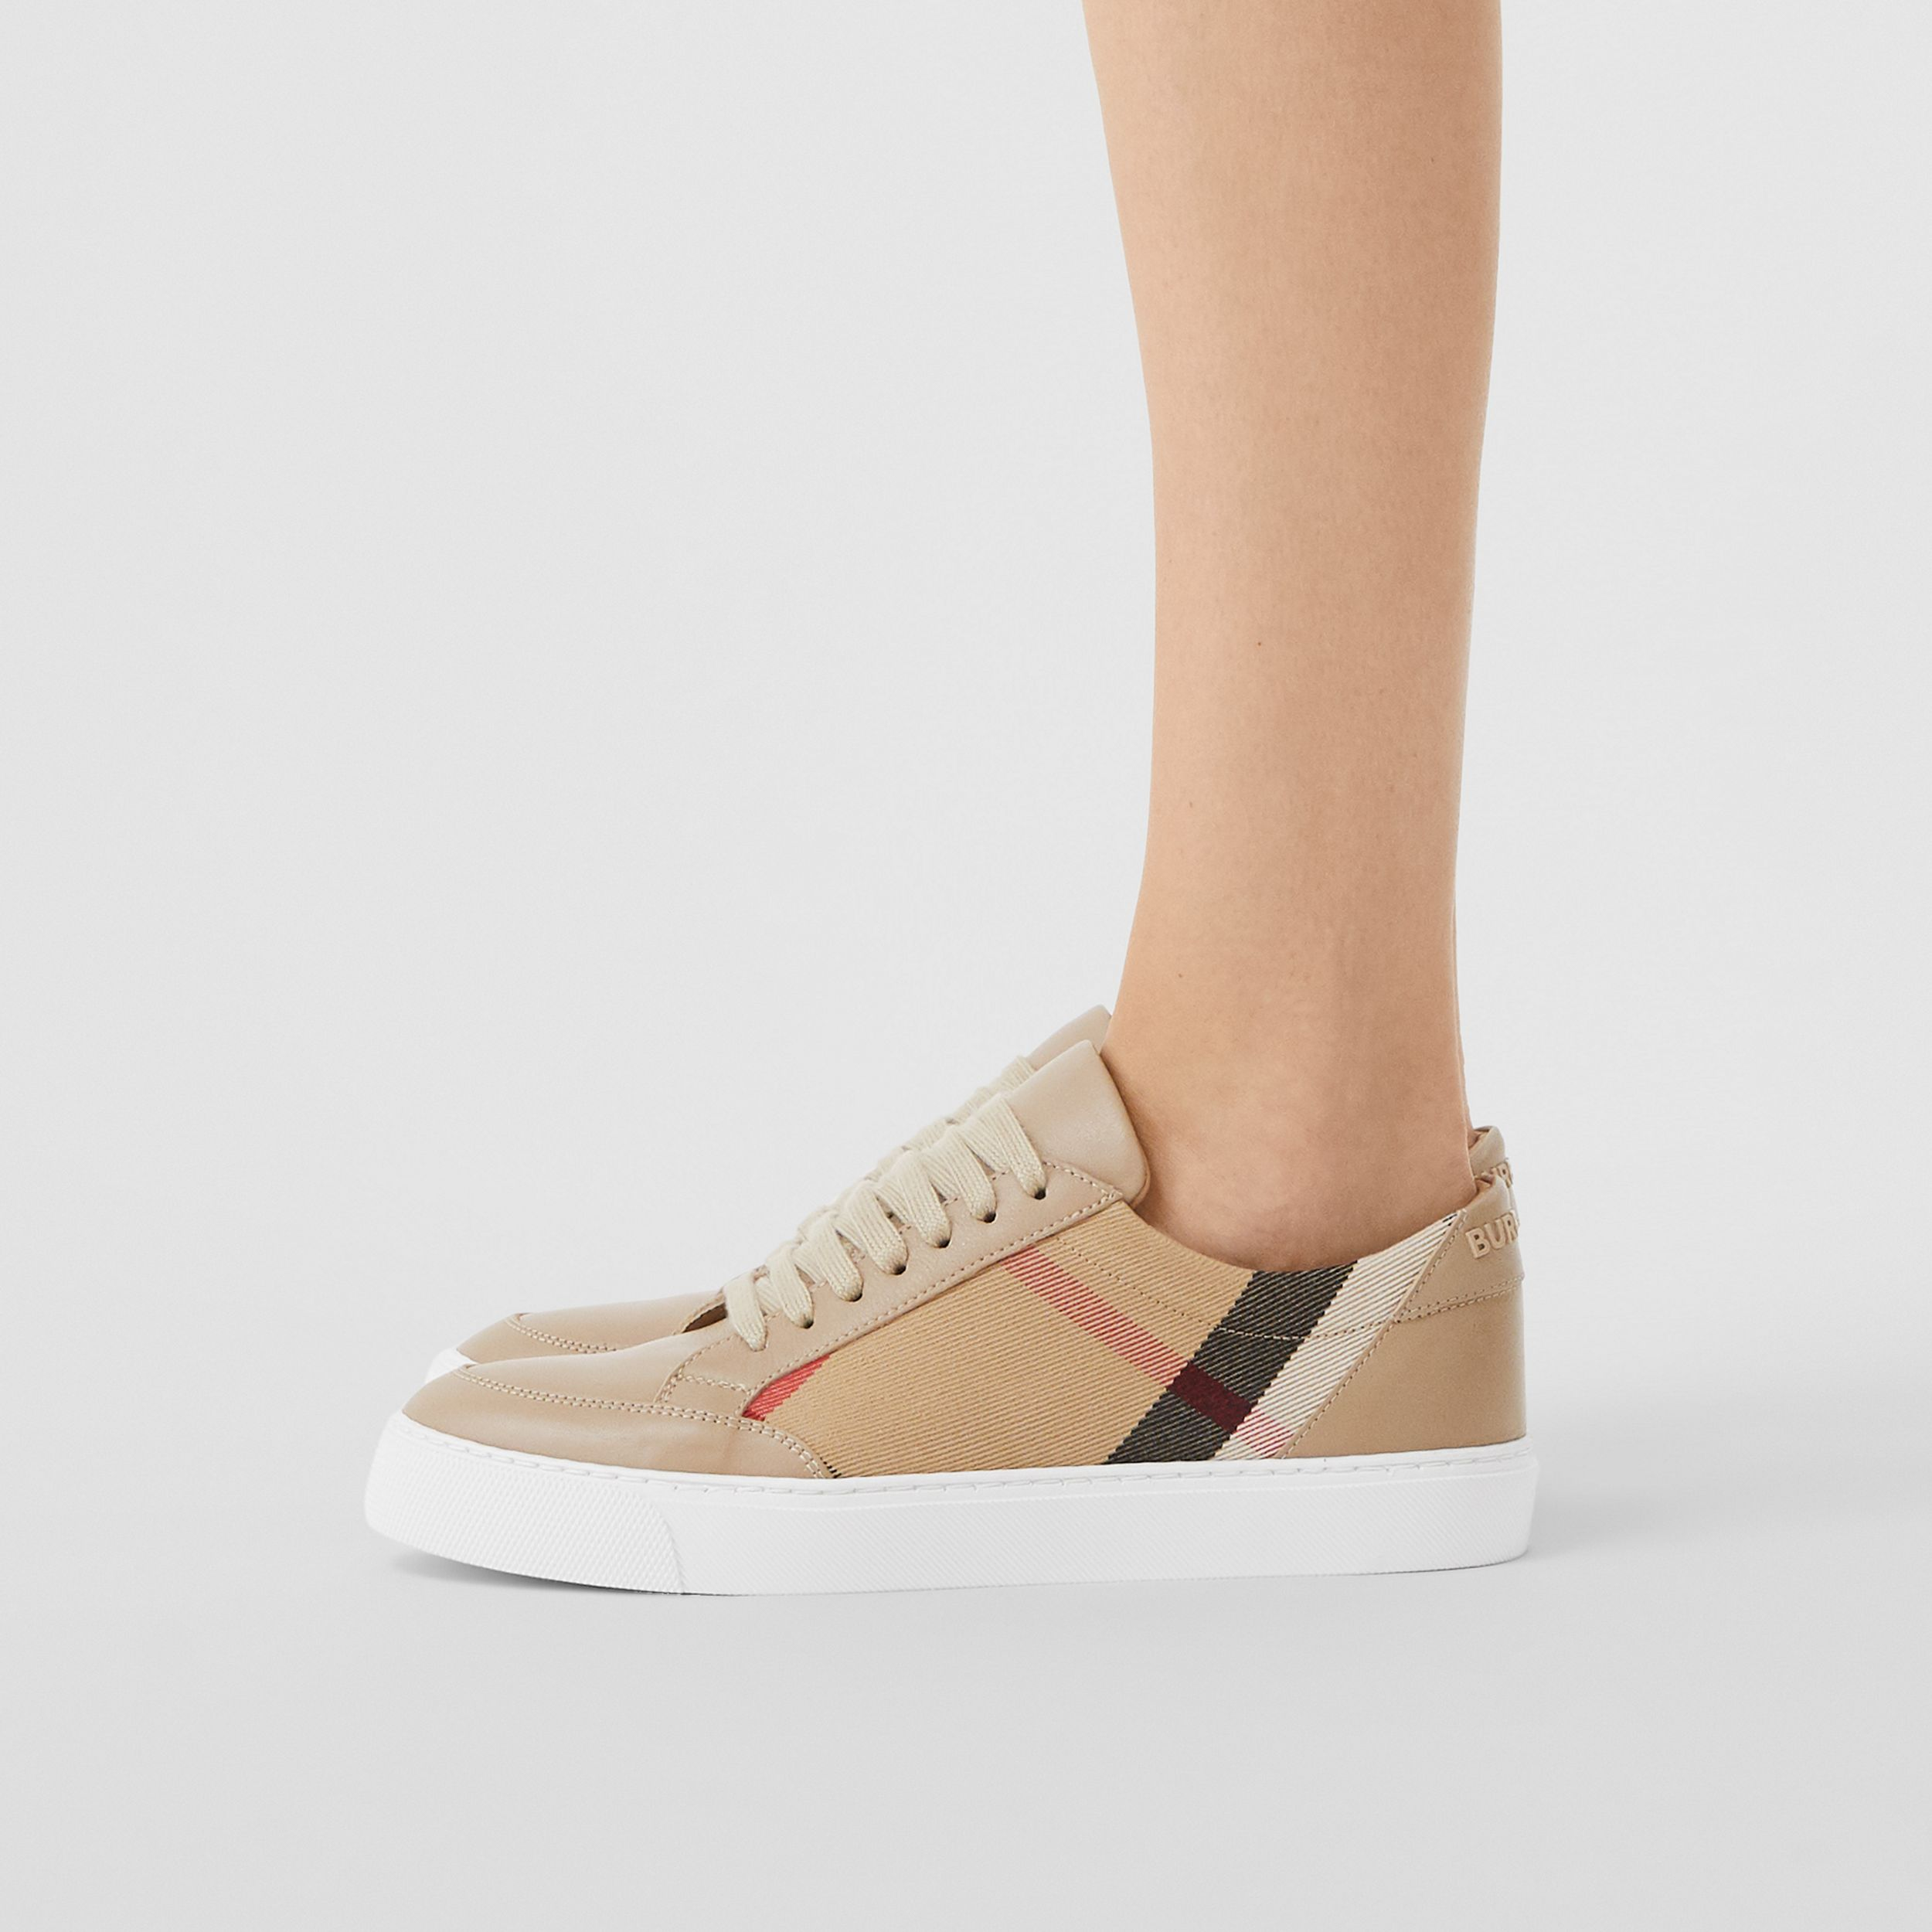 House Check and Leather Sneakers in Tan - Women | Burberry Australia - 3